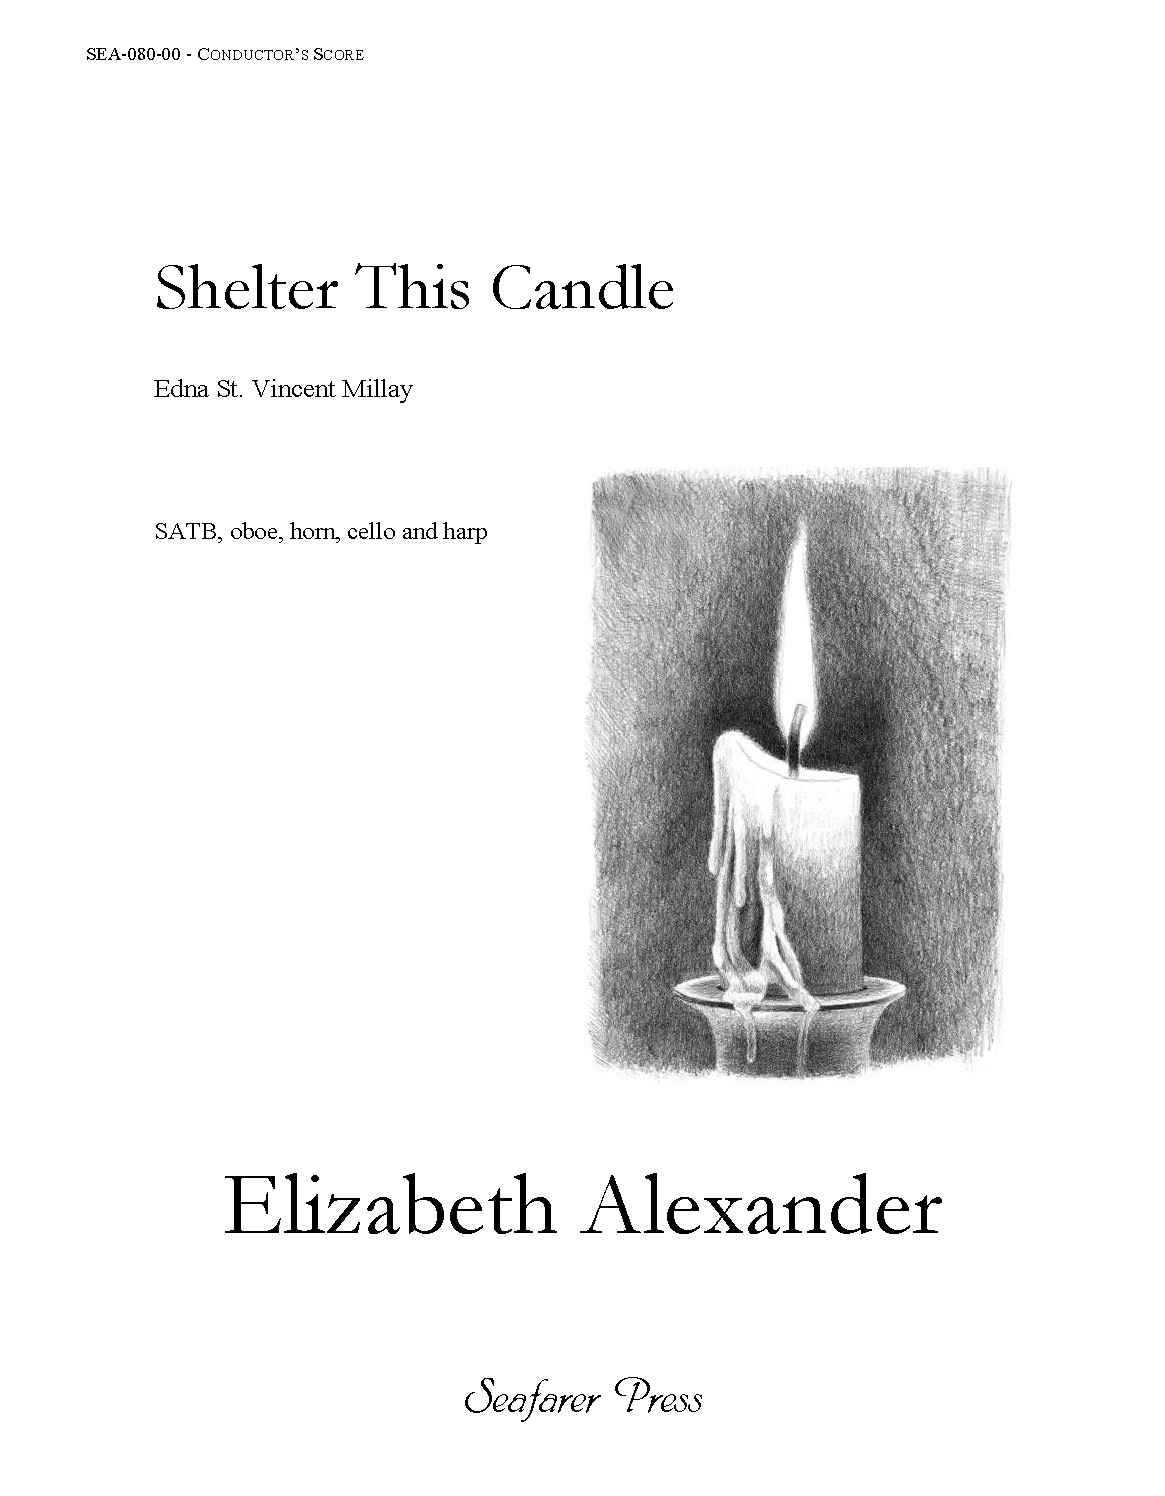 SEA-080-00 - Shelter This Candle